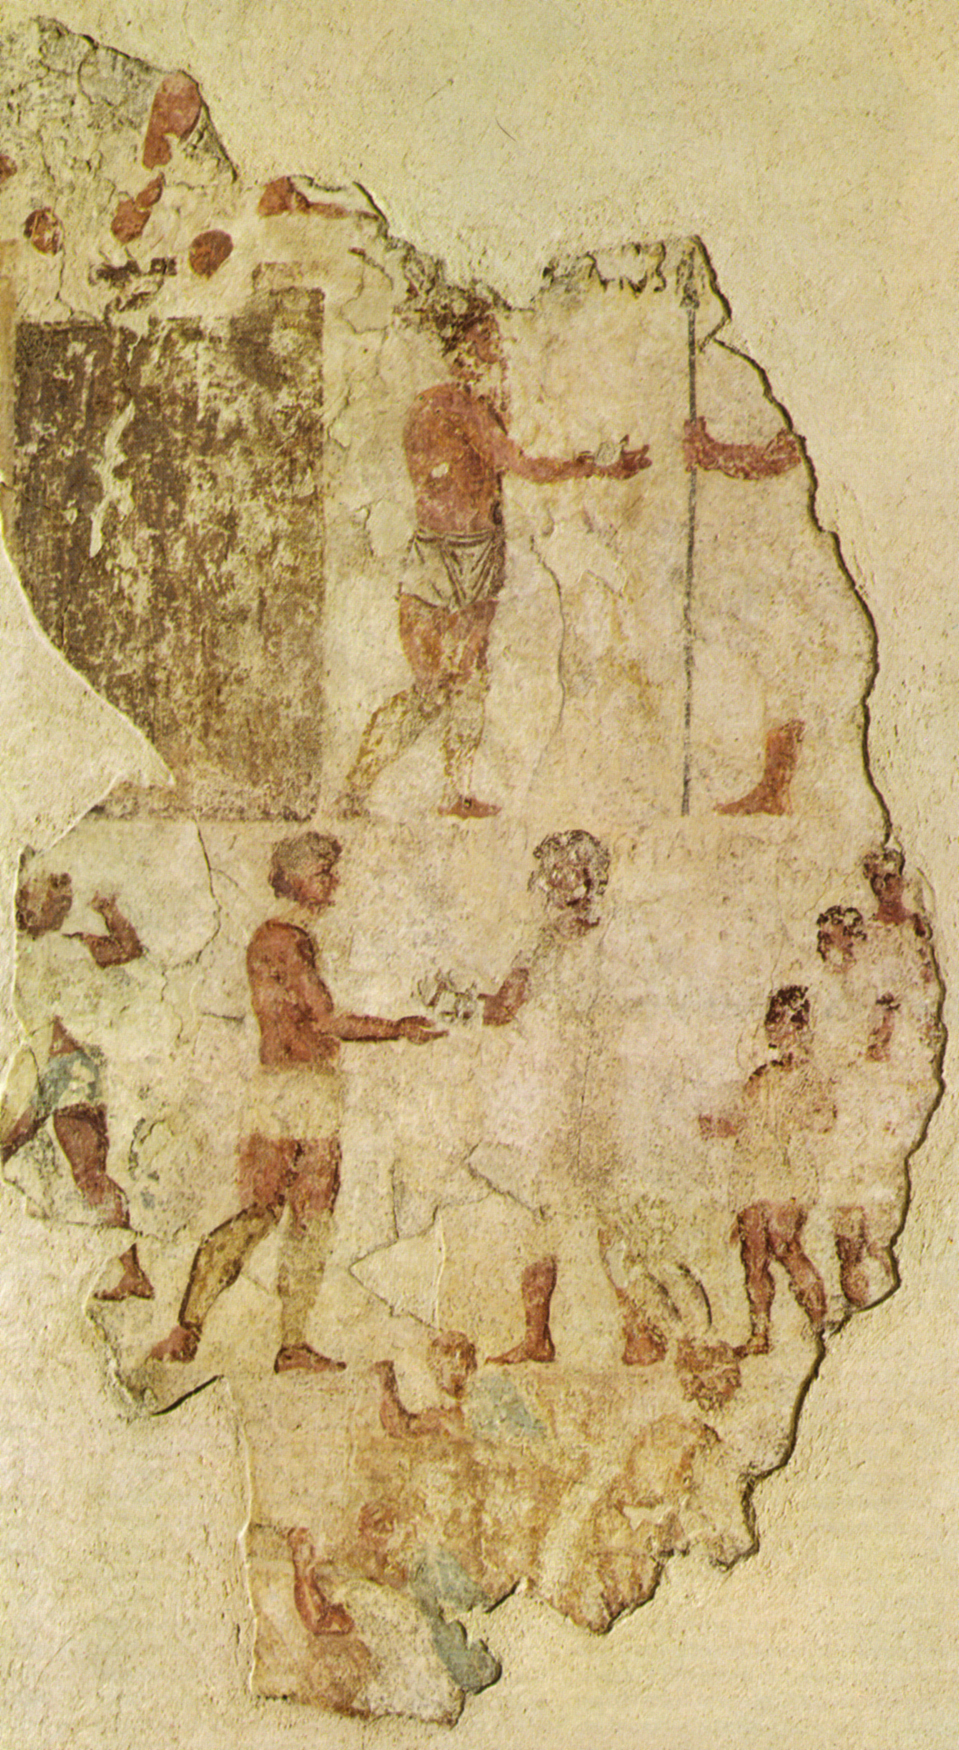 An ancient Roman fresco from the Necropolis of Esquilino, dated c. 300-280 BC, depicts a handshake between a Roman and a non-Roman Image credit: Public domain, Wikimedia Commons